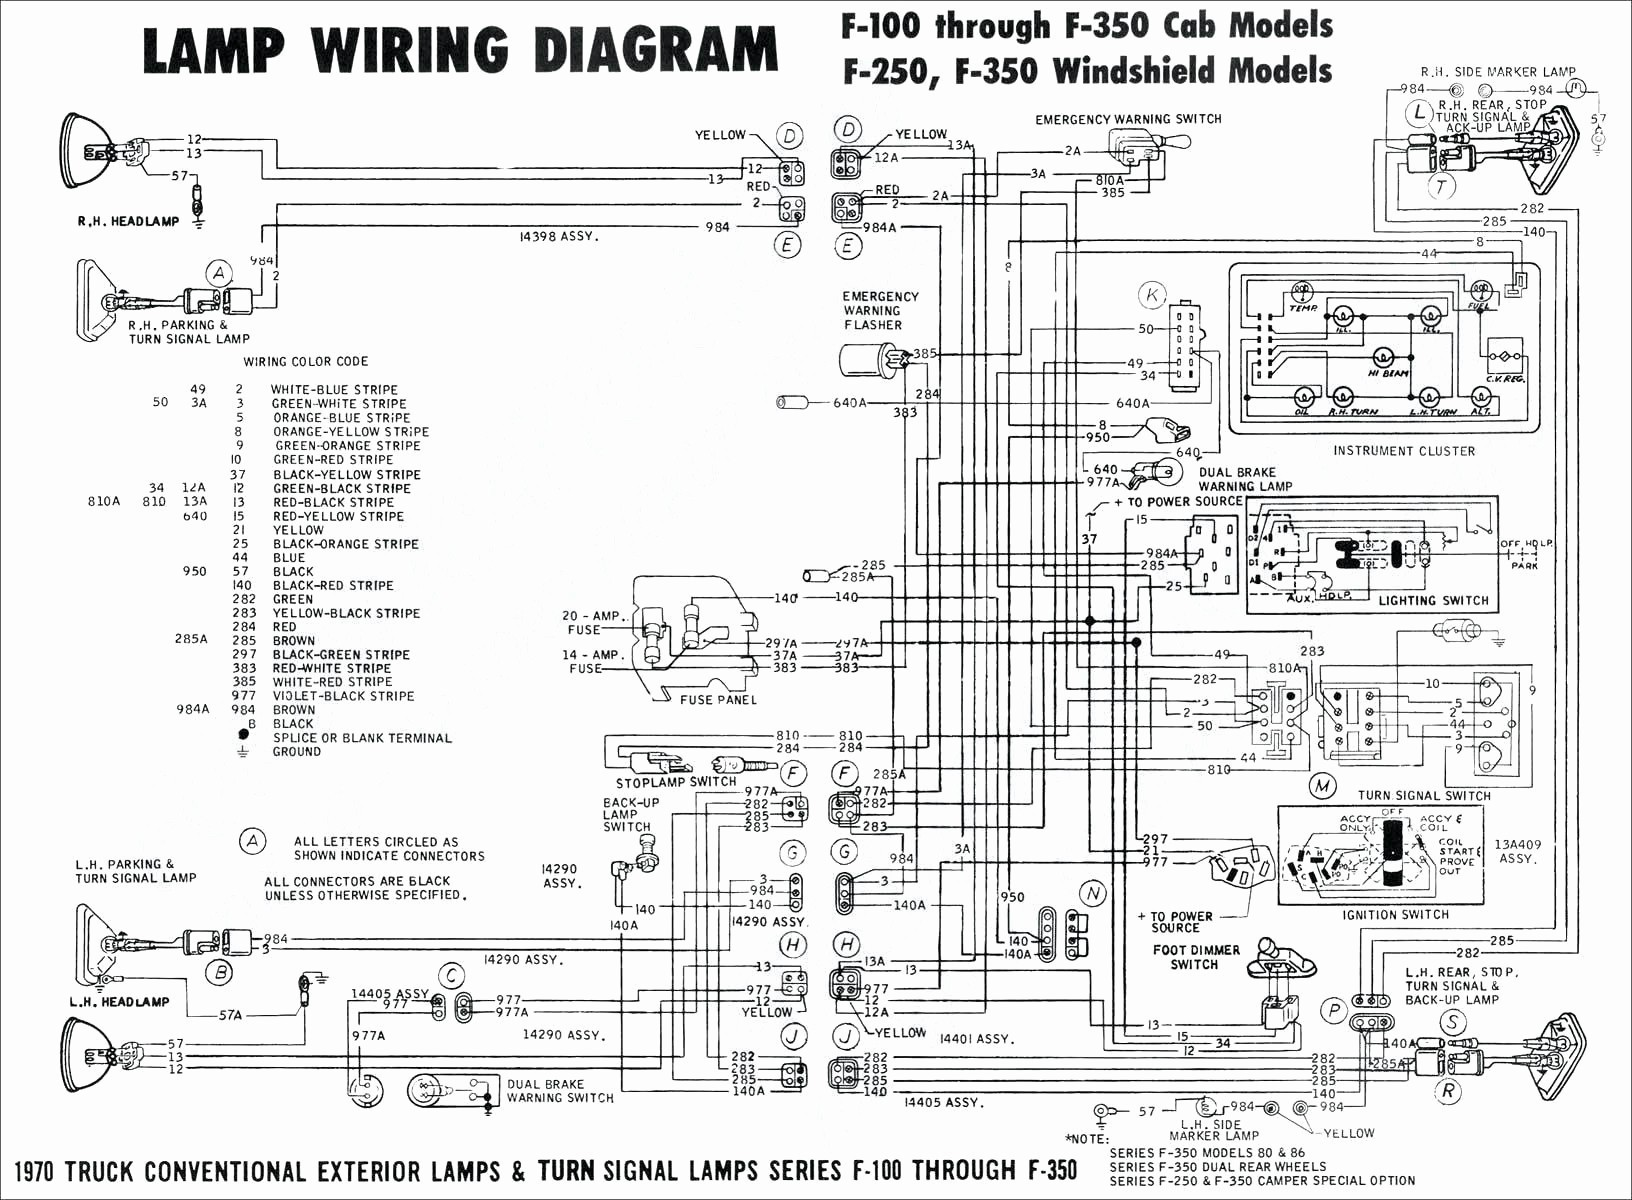 2006 Ford F650 Wiring Diagram | solution-licenses Wiring Diagram Snapshot -  solution-licenses.palmamobili.it | Ford F650 Wiring |  | palmamobili.it